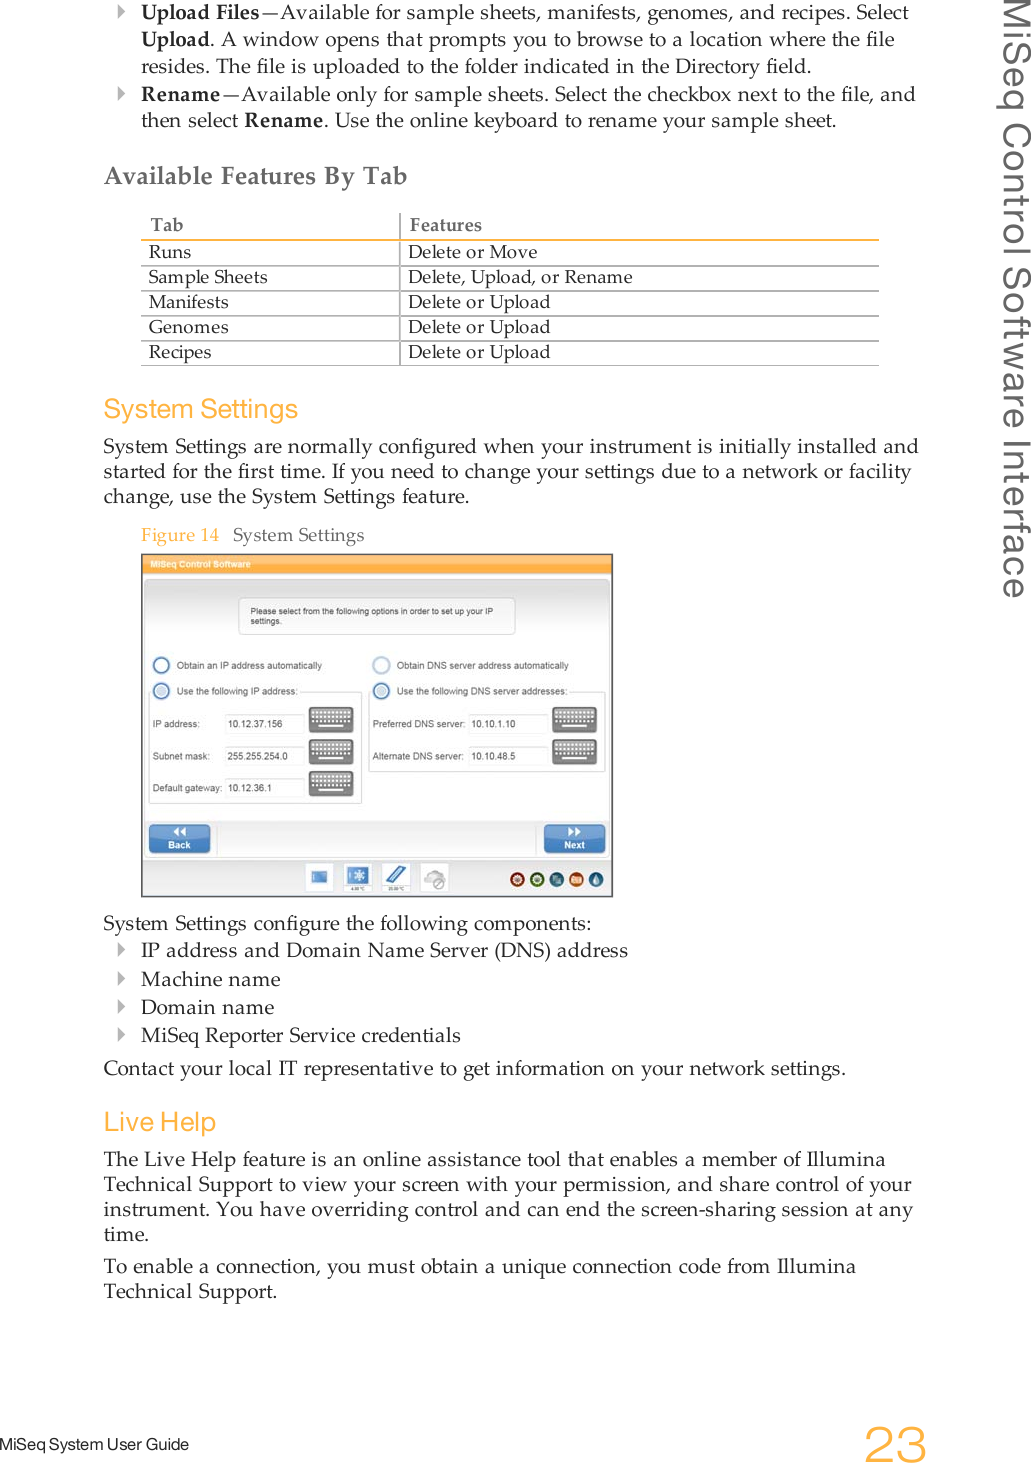 miseq system user guide part 15027617